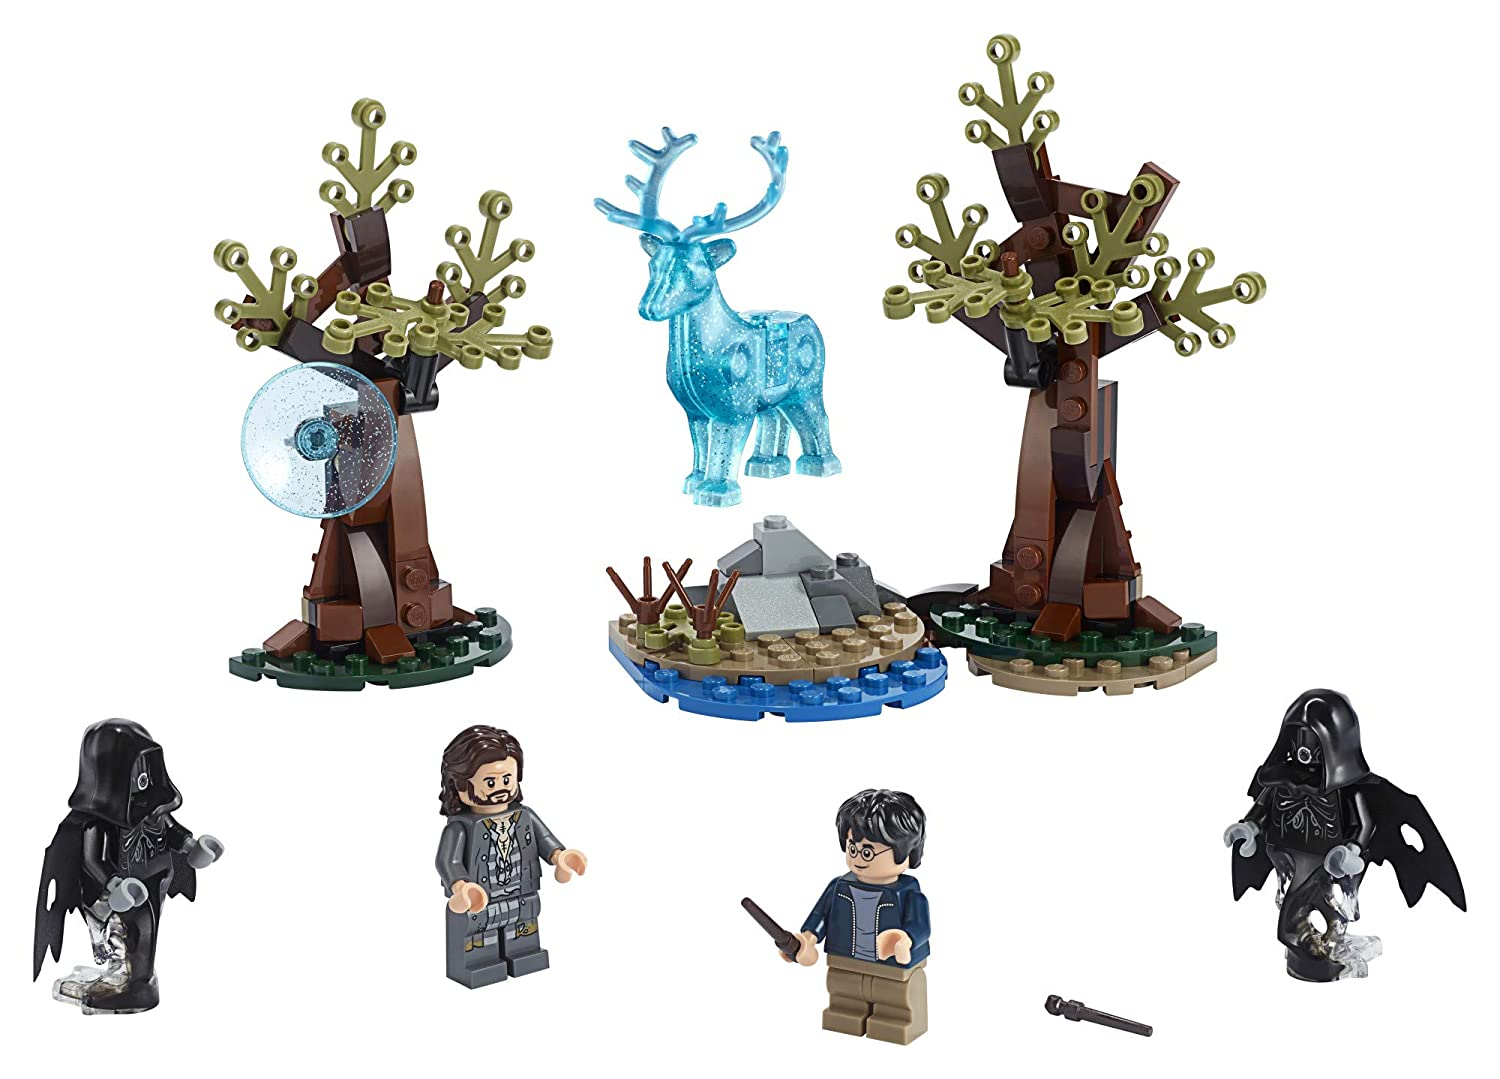 121 Pieces LEGO Harry Potter and The Prisoner of Azkaban Expecto Patronum 75945 Building Kit